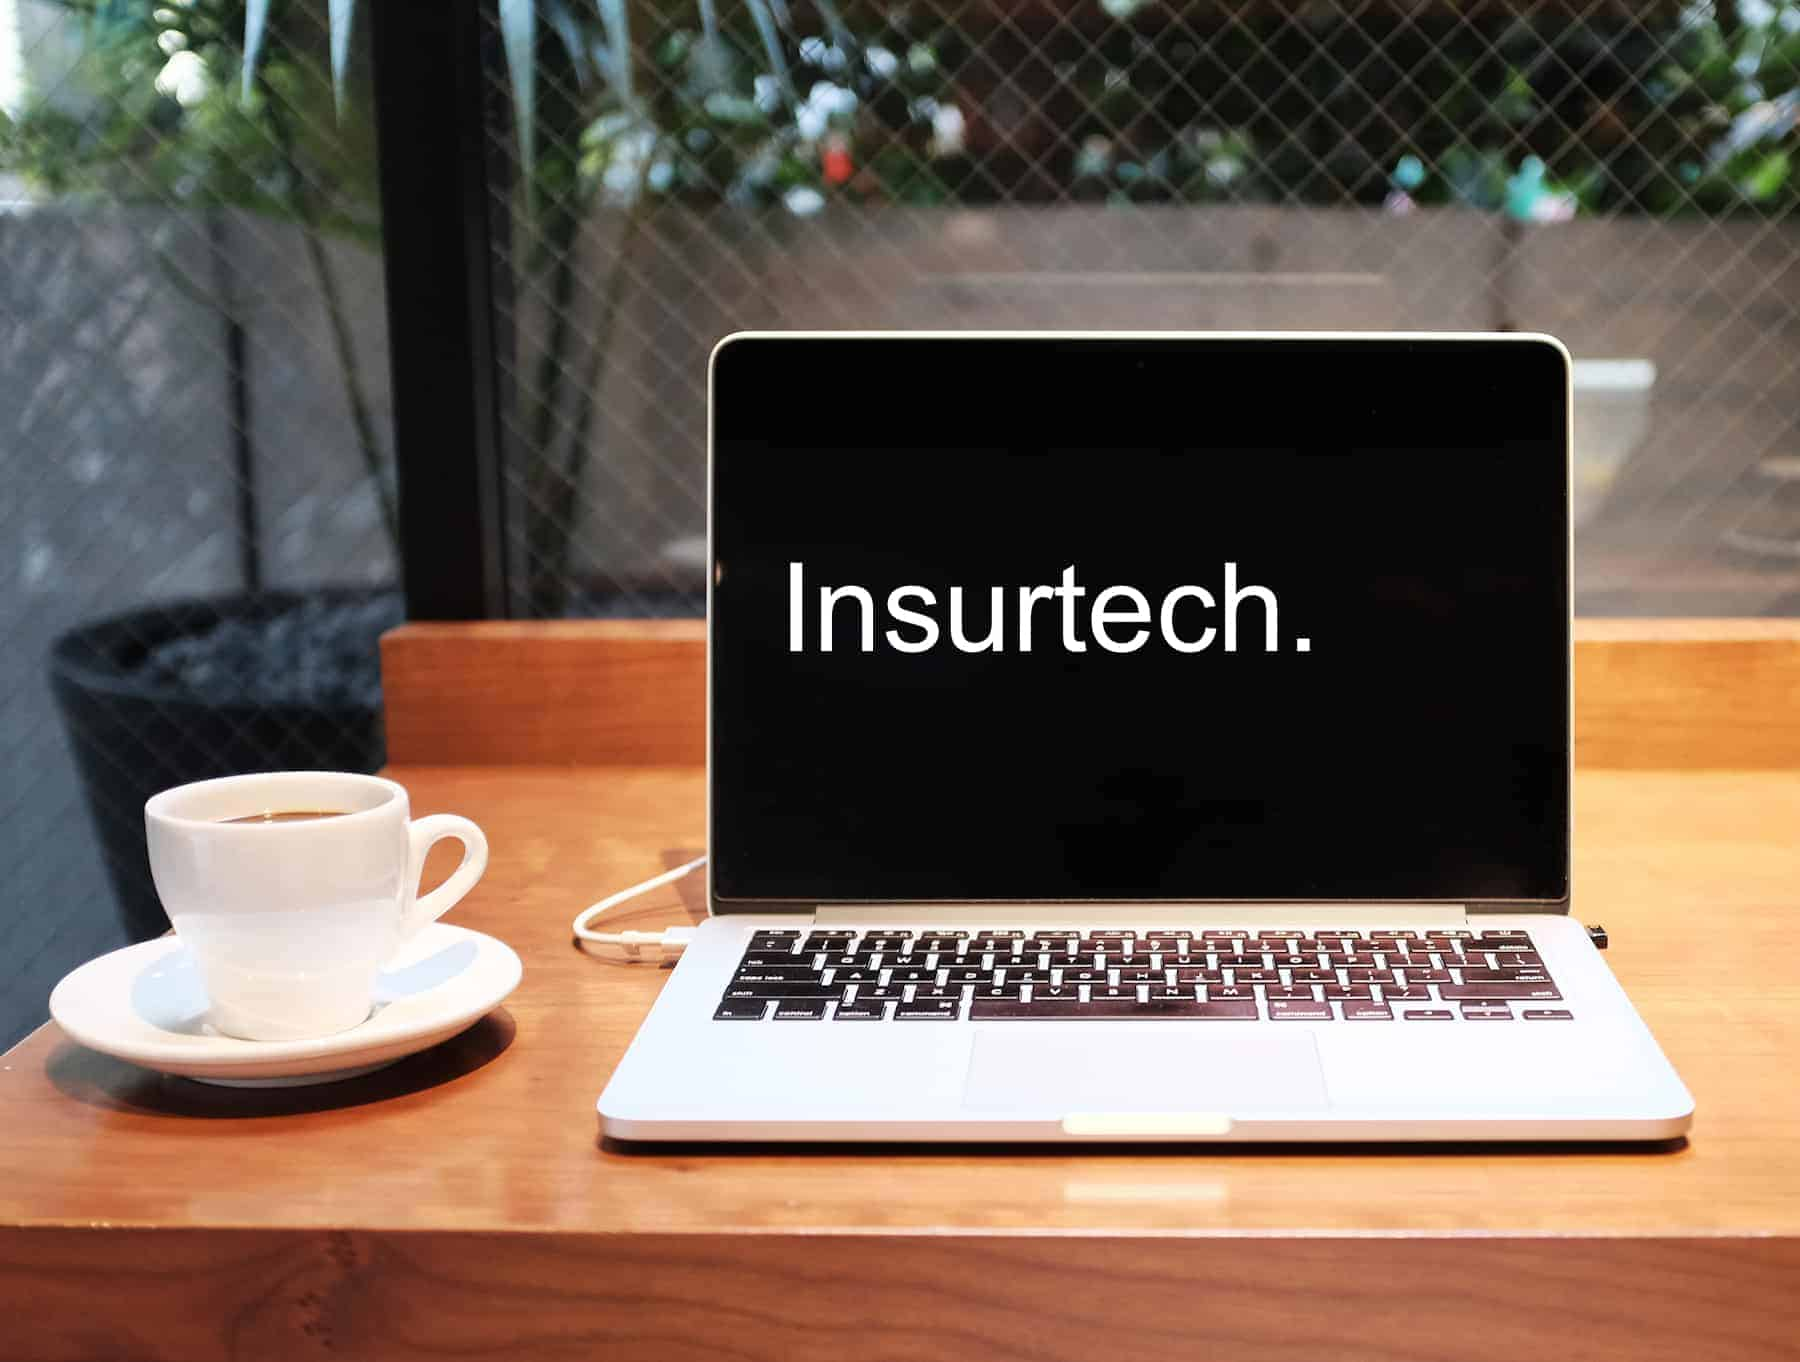 Access here alternative investment news about Insurtech Bolttech Finalizes $210M Series A Round Led By Activant Capital Group